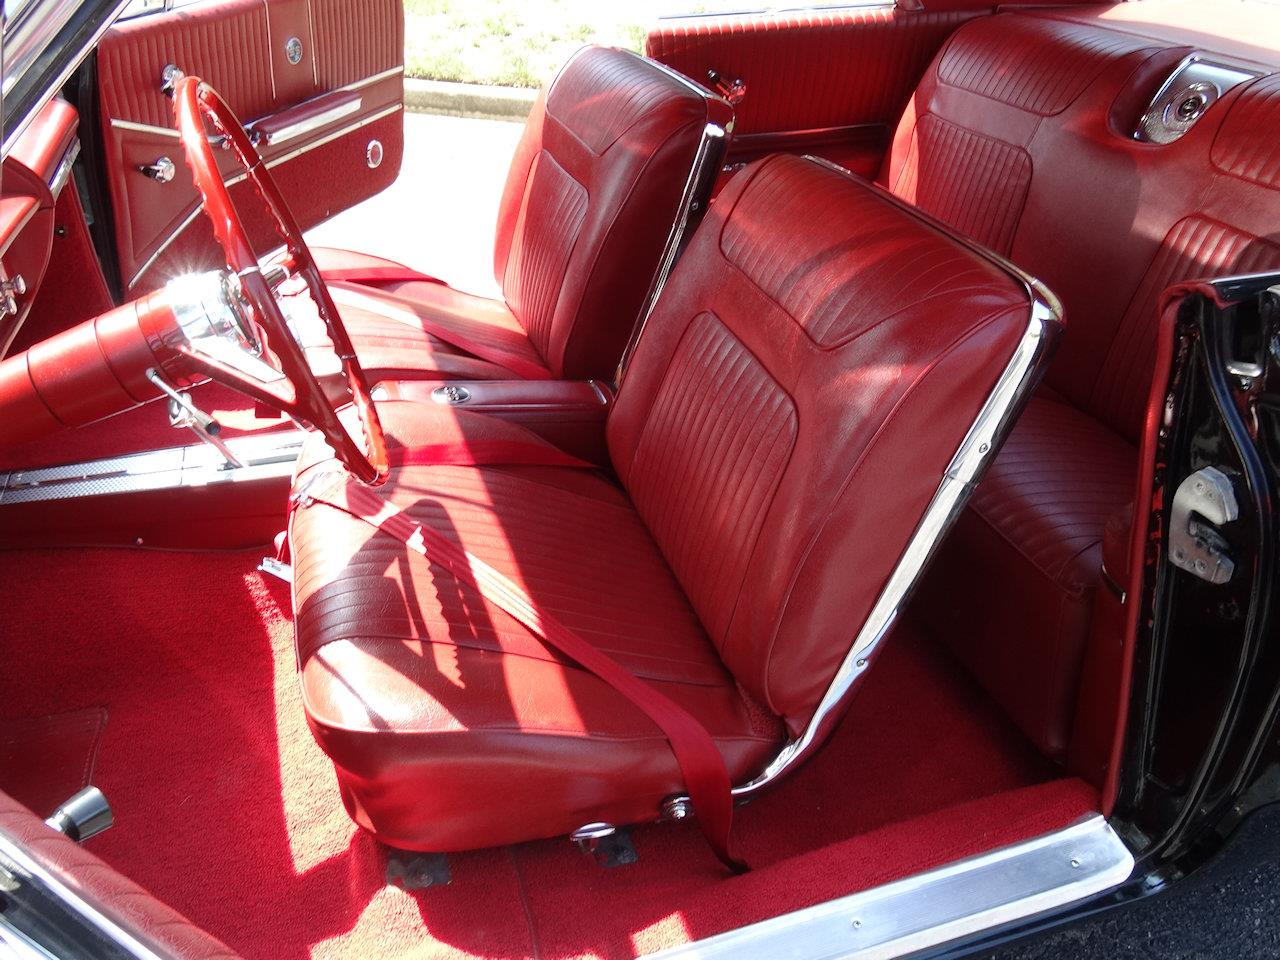 Large Picture of '64 Chevrolet Impala located in Alpharetta Georgia - $31,595.00 Offered by Gateway Classic Cars - Atlanta - KF0Z